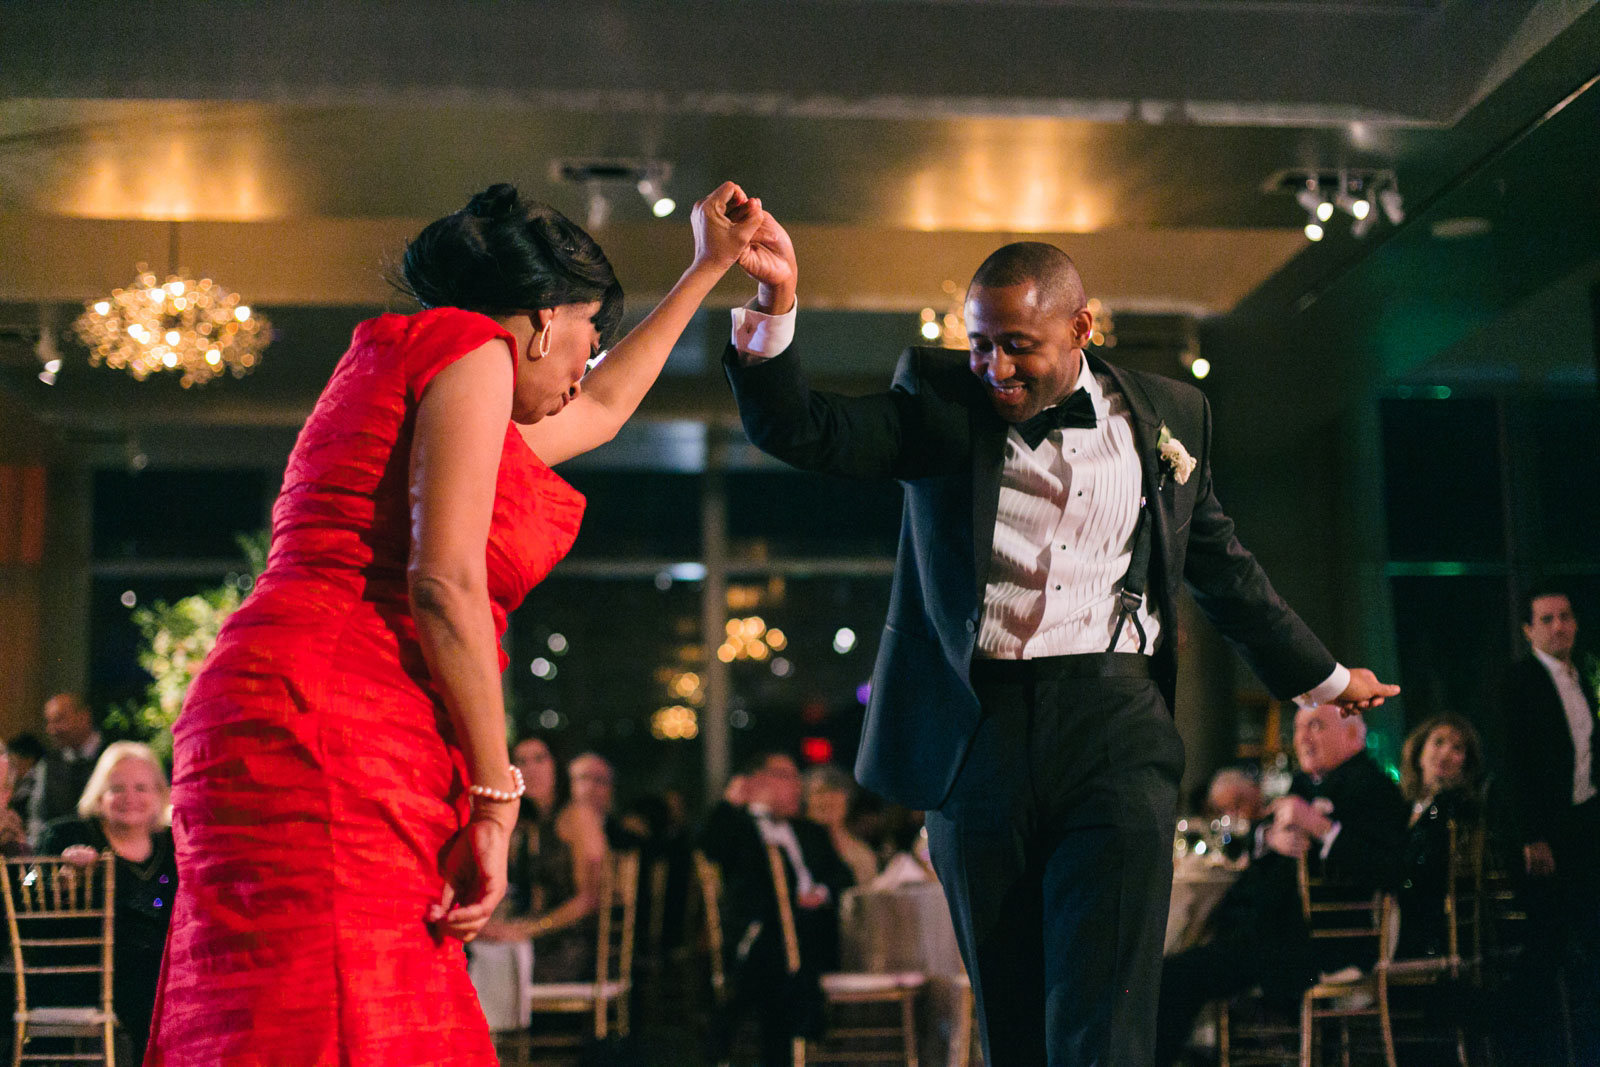 Groom and his mother bust a move on dance floor during their fun mother-son dance at Ritz-Carlton